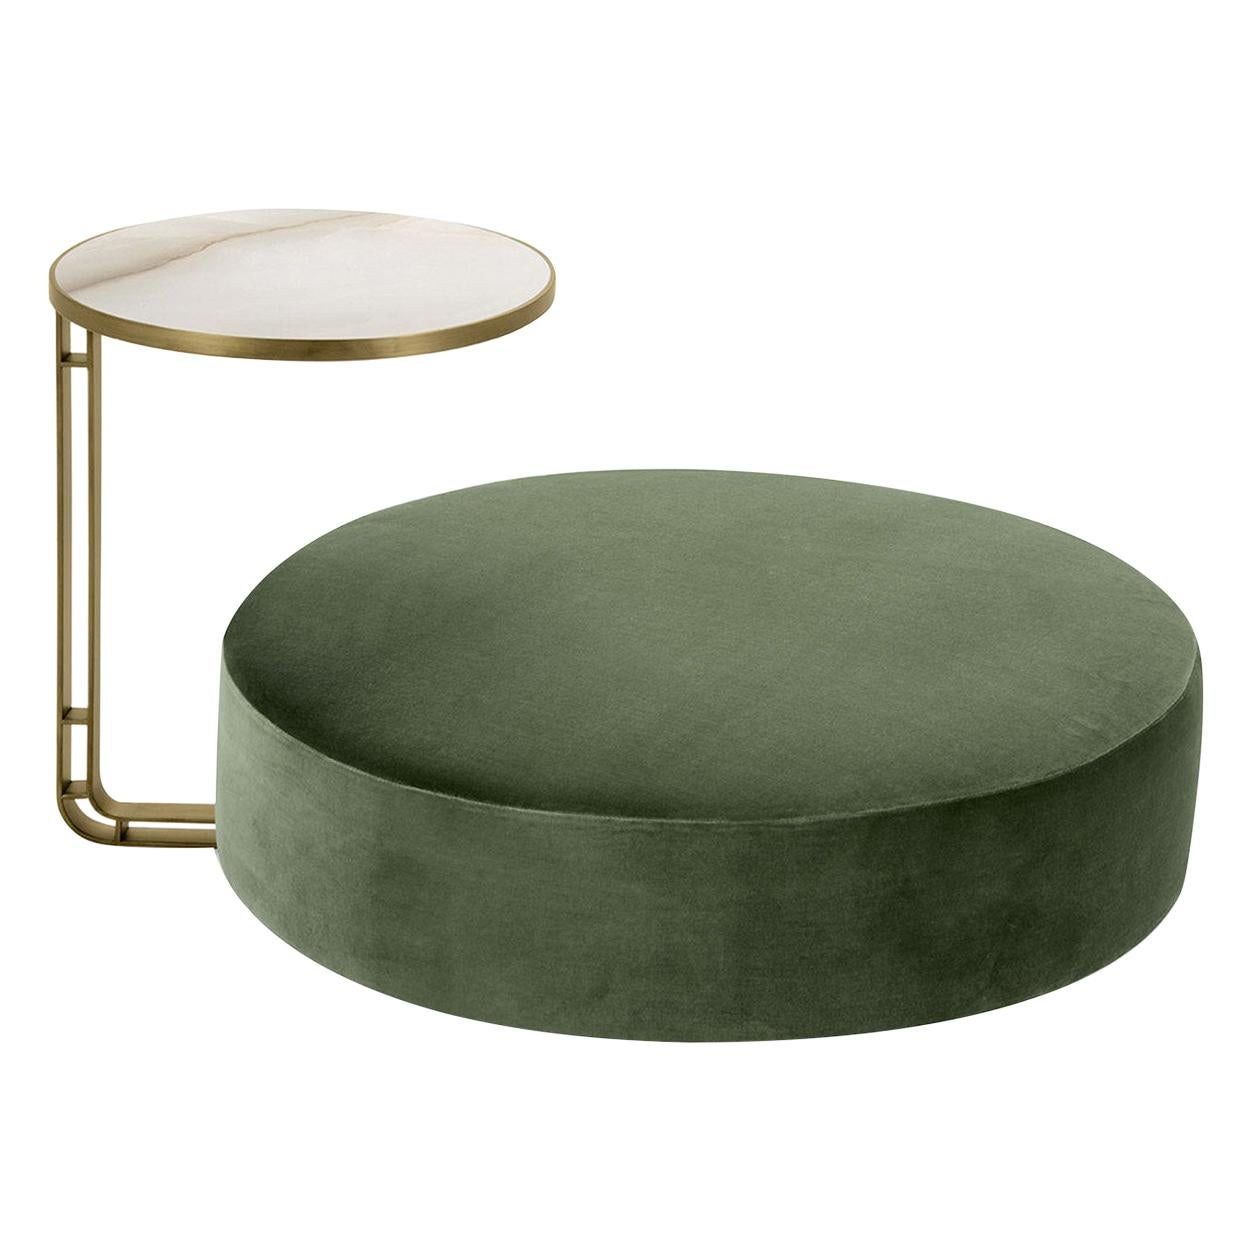 Febe Set of Green Pouf and Small Table